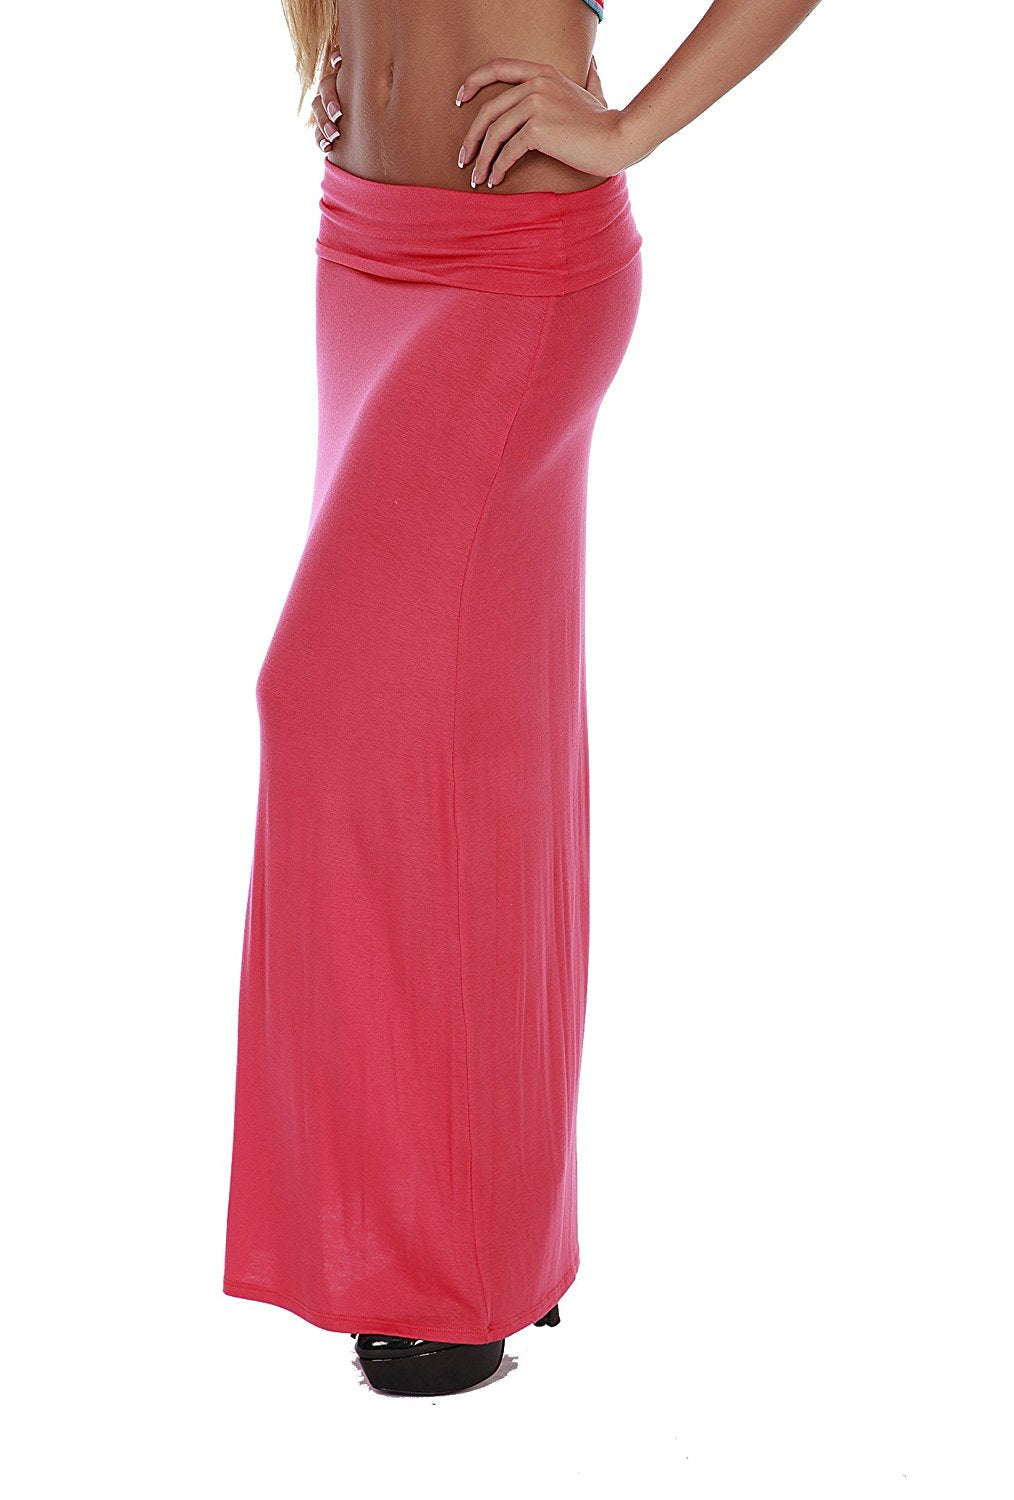 Hollywood Star Fashion Women's Basic Stretch Solid Colored Plain Maxi Long Skirt